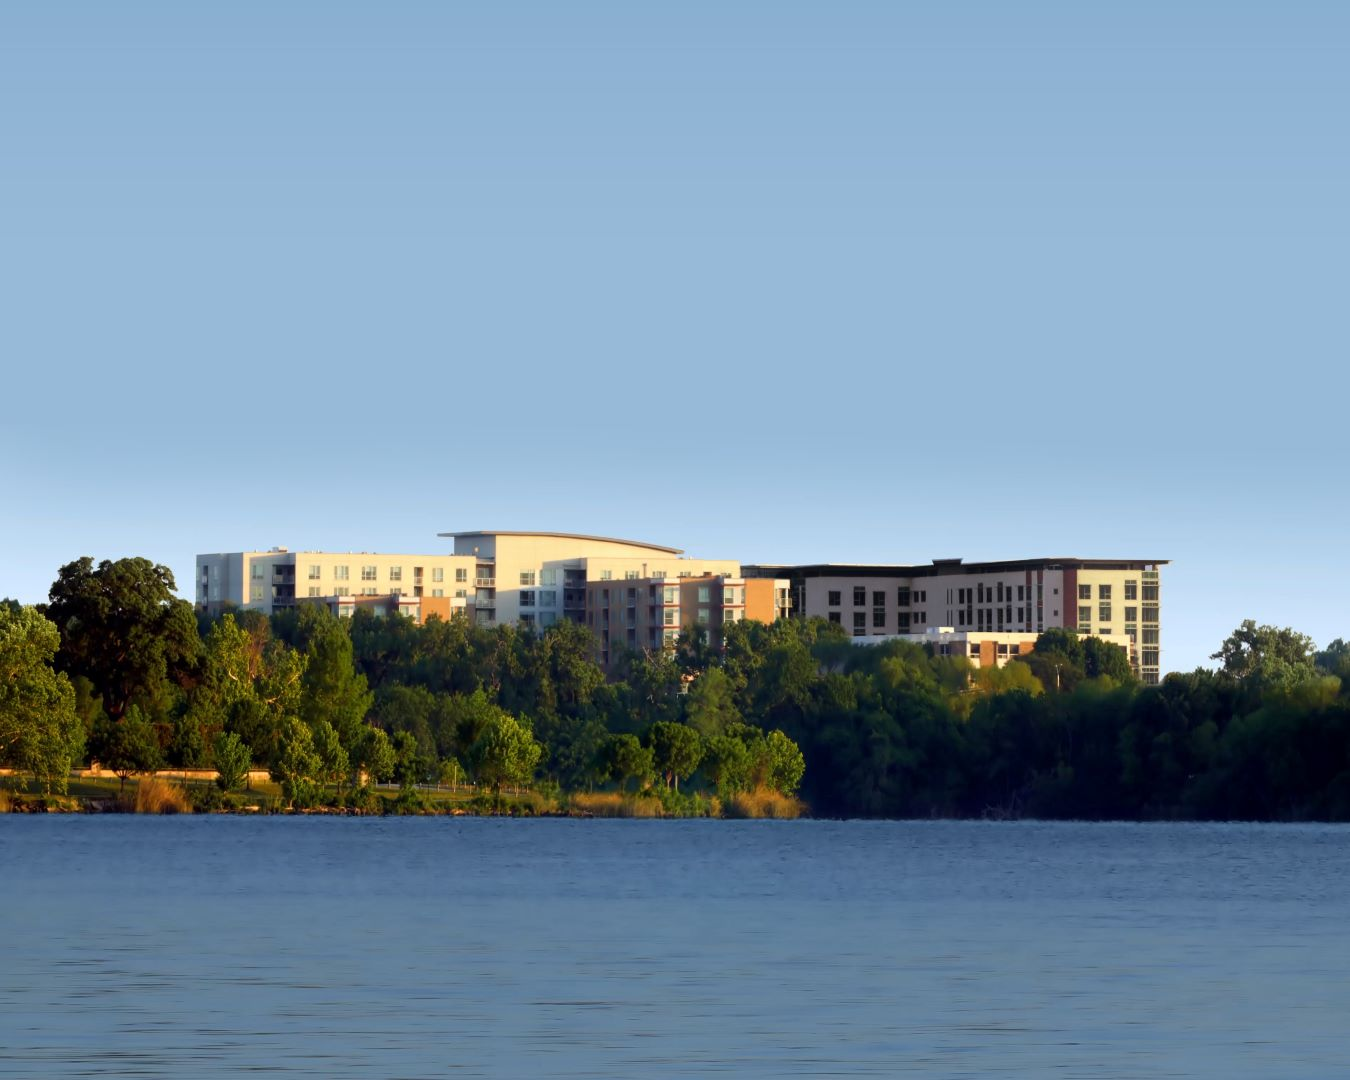 view of CC Young from across a lake